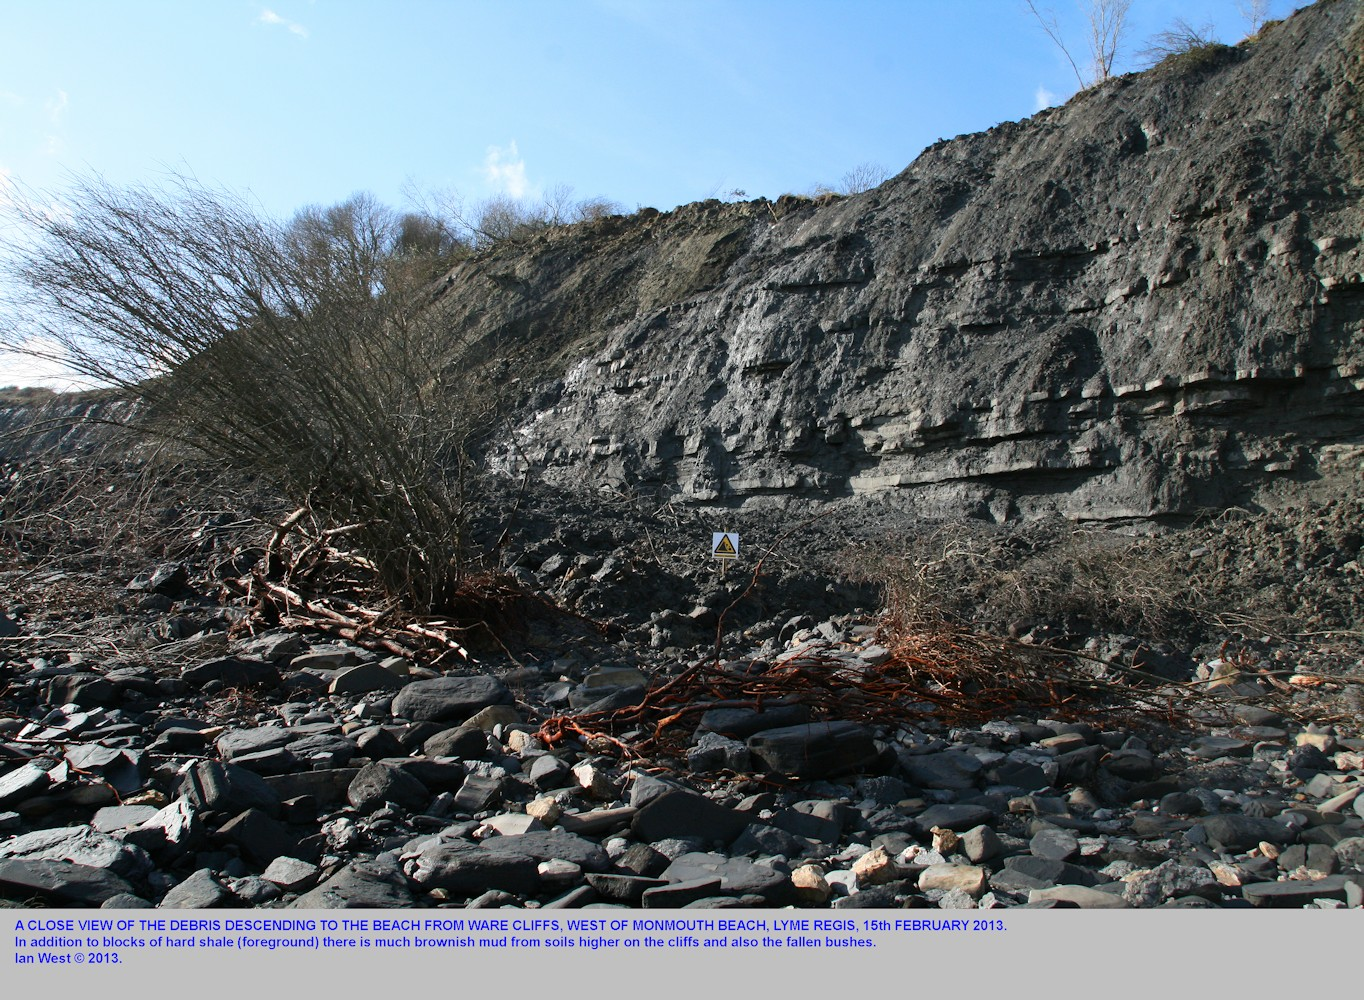 A closer view of the fall of mud, rock and bushes at Ware Cliffs, southwest of Monmouth Beach, Lyme Regis, Dorset, February 2013